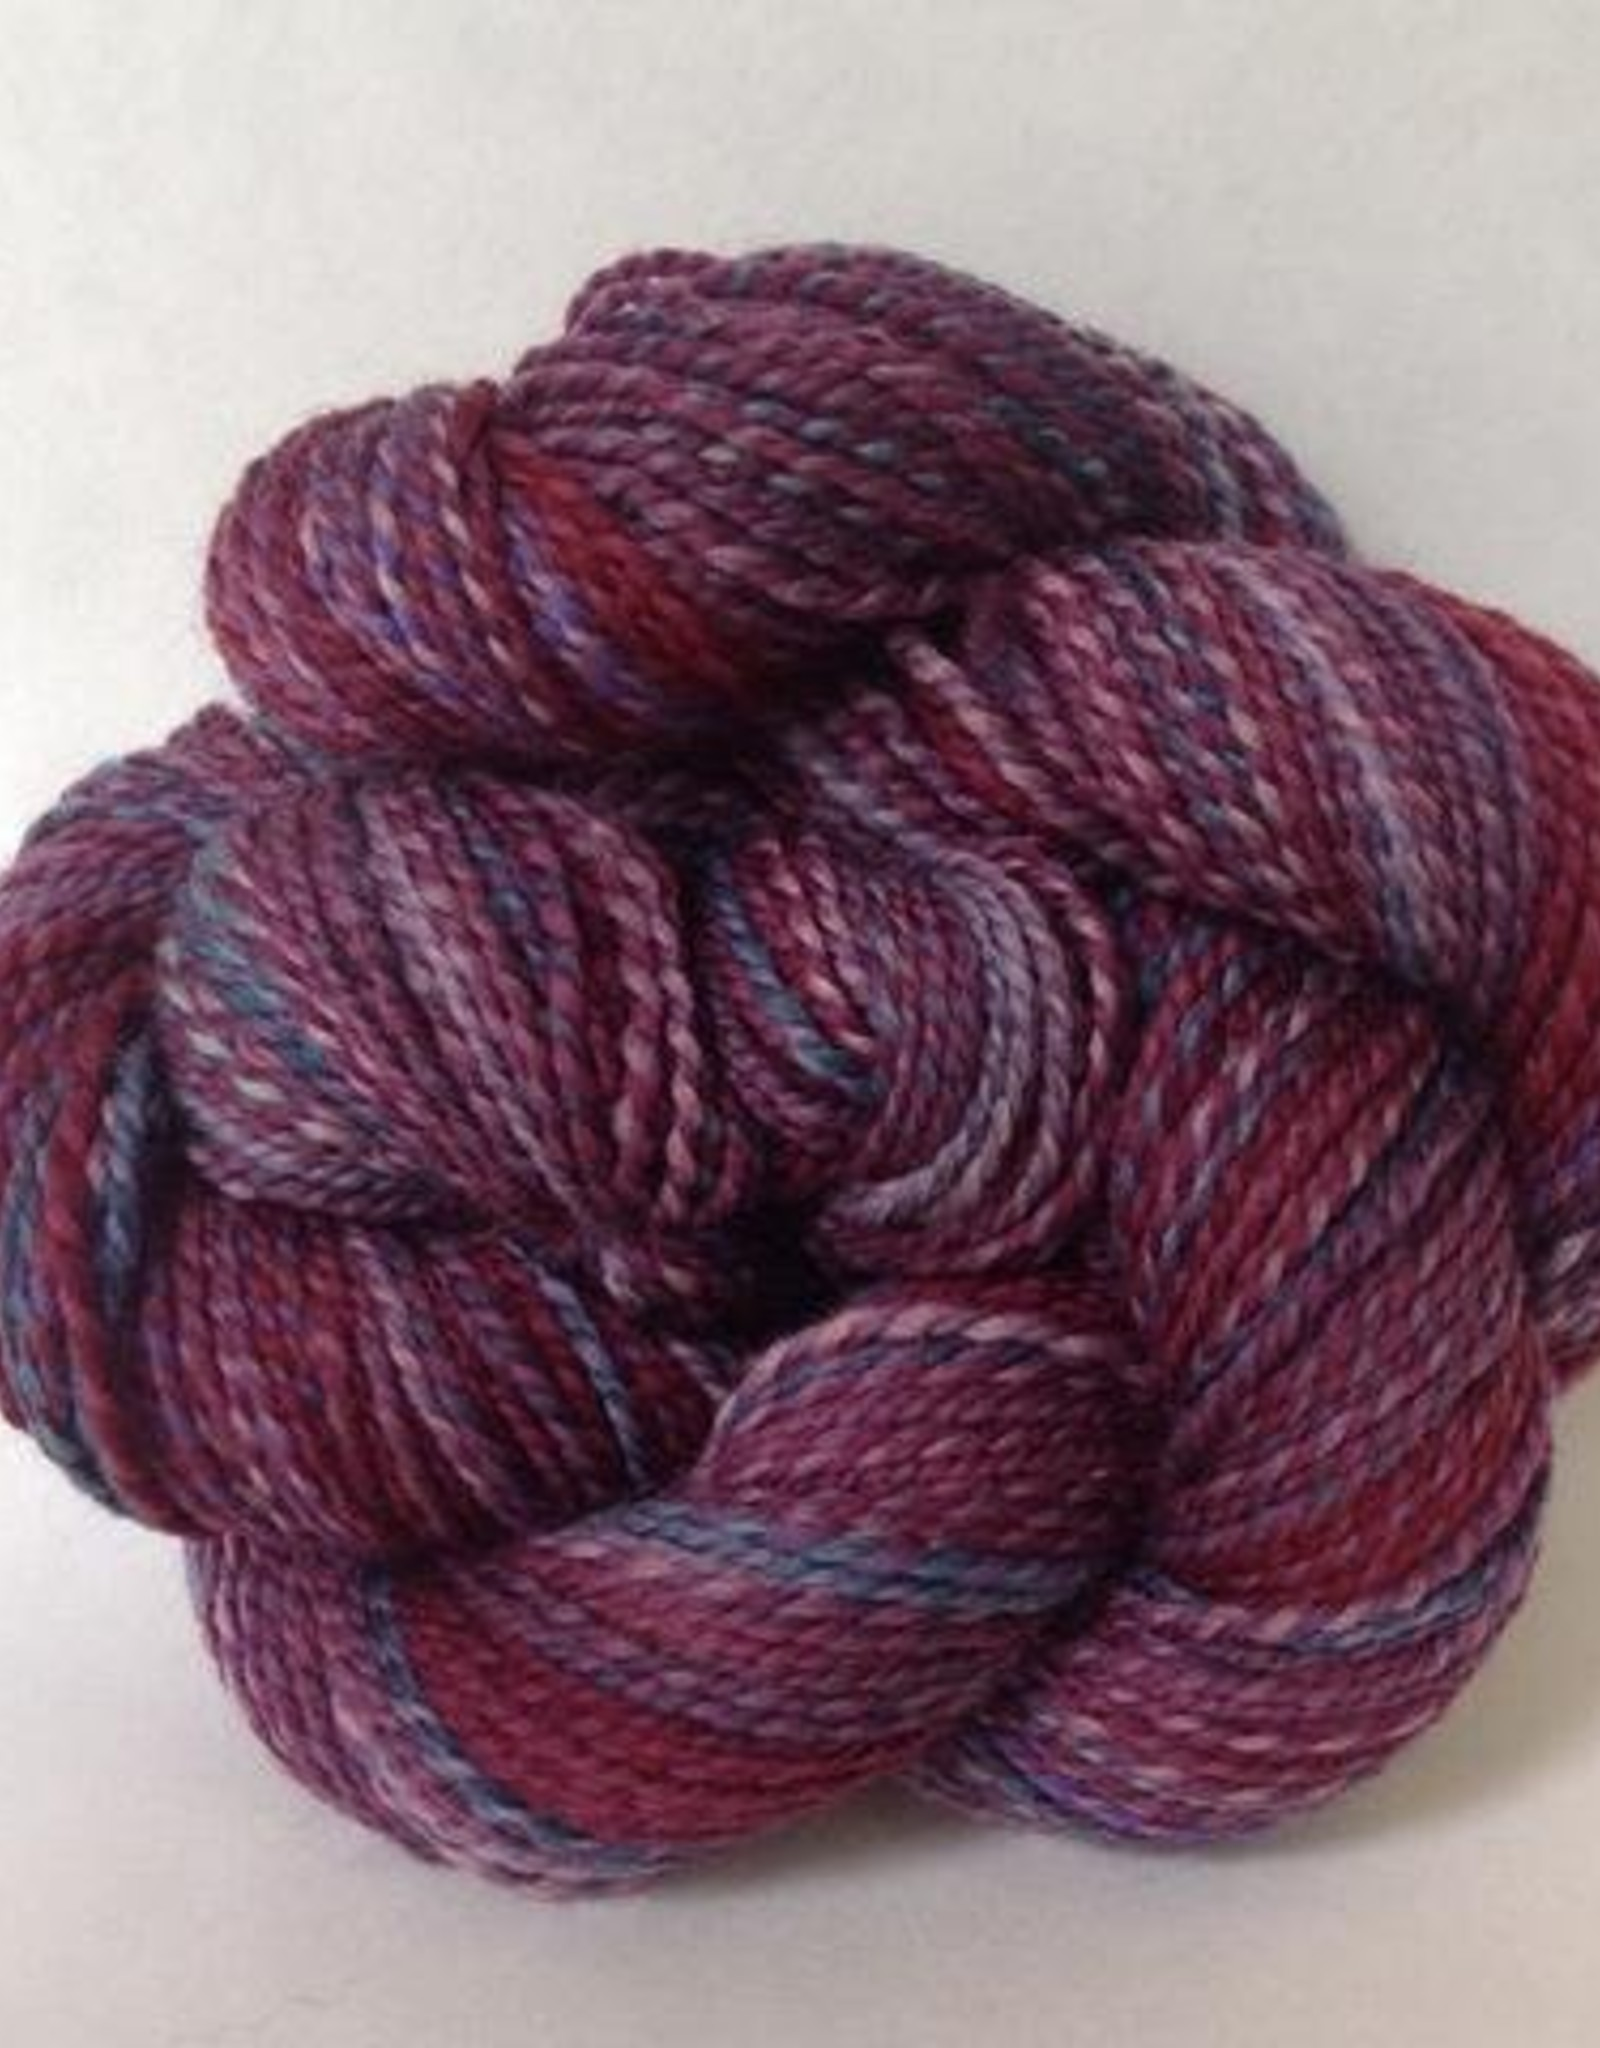 Spincycle Yarns Dyed In The Wool Nostalgia